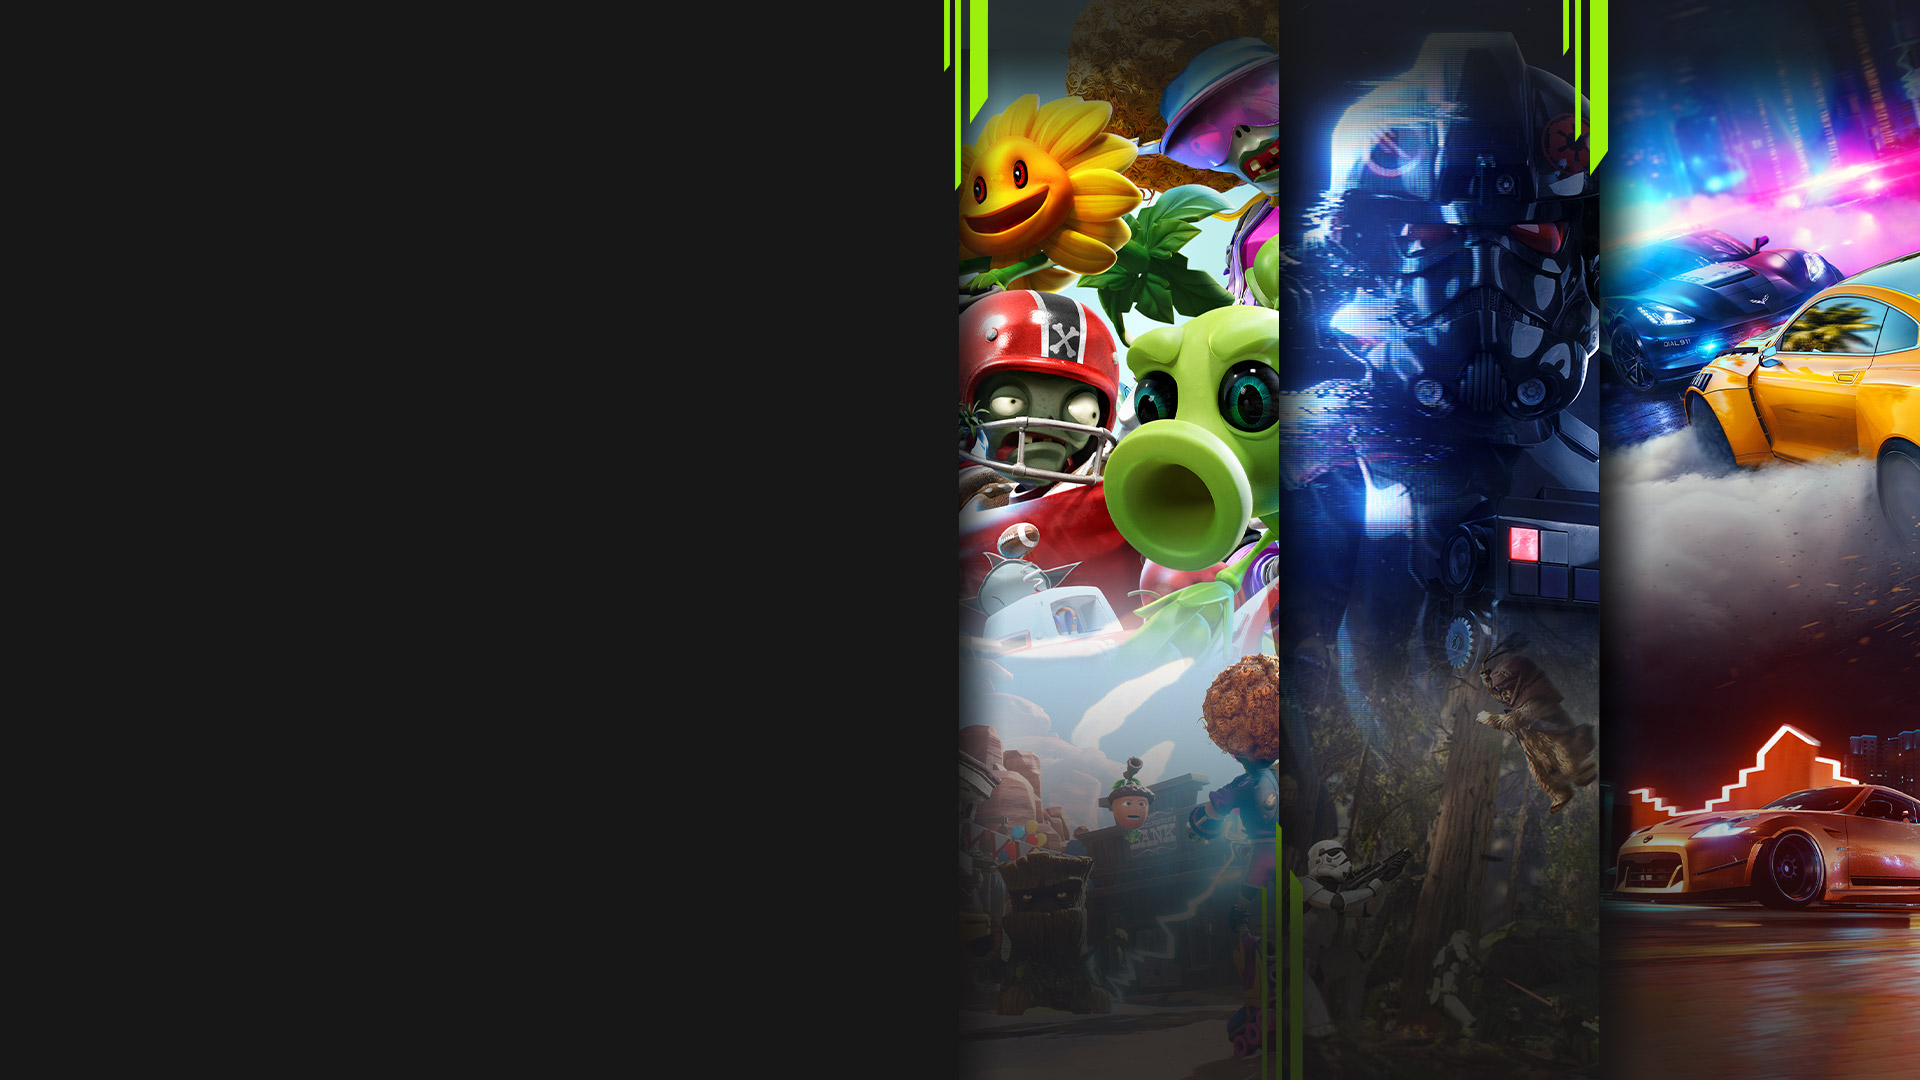 Arte de diversos jogos da EA, incluindo o Plants vs. Zombies: Battle for Neighborville, o Star Wars Battlefront II e o Need for Speed Heat.